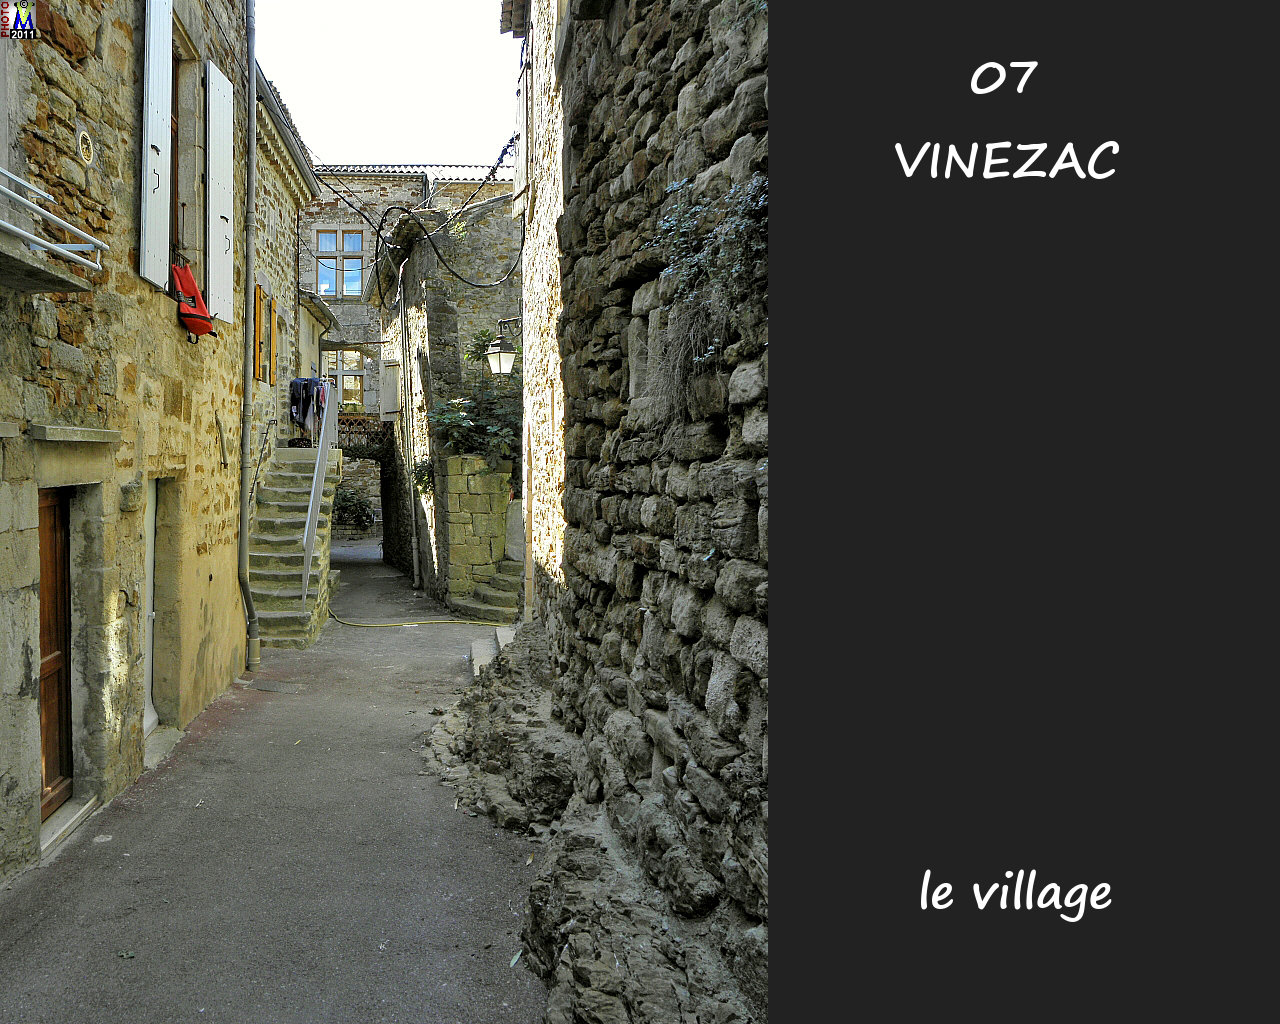 07VINEZAC_village_164.jpg